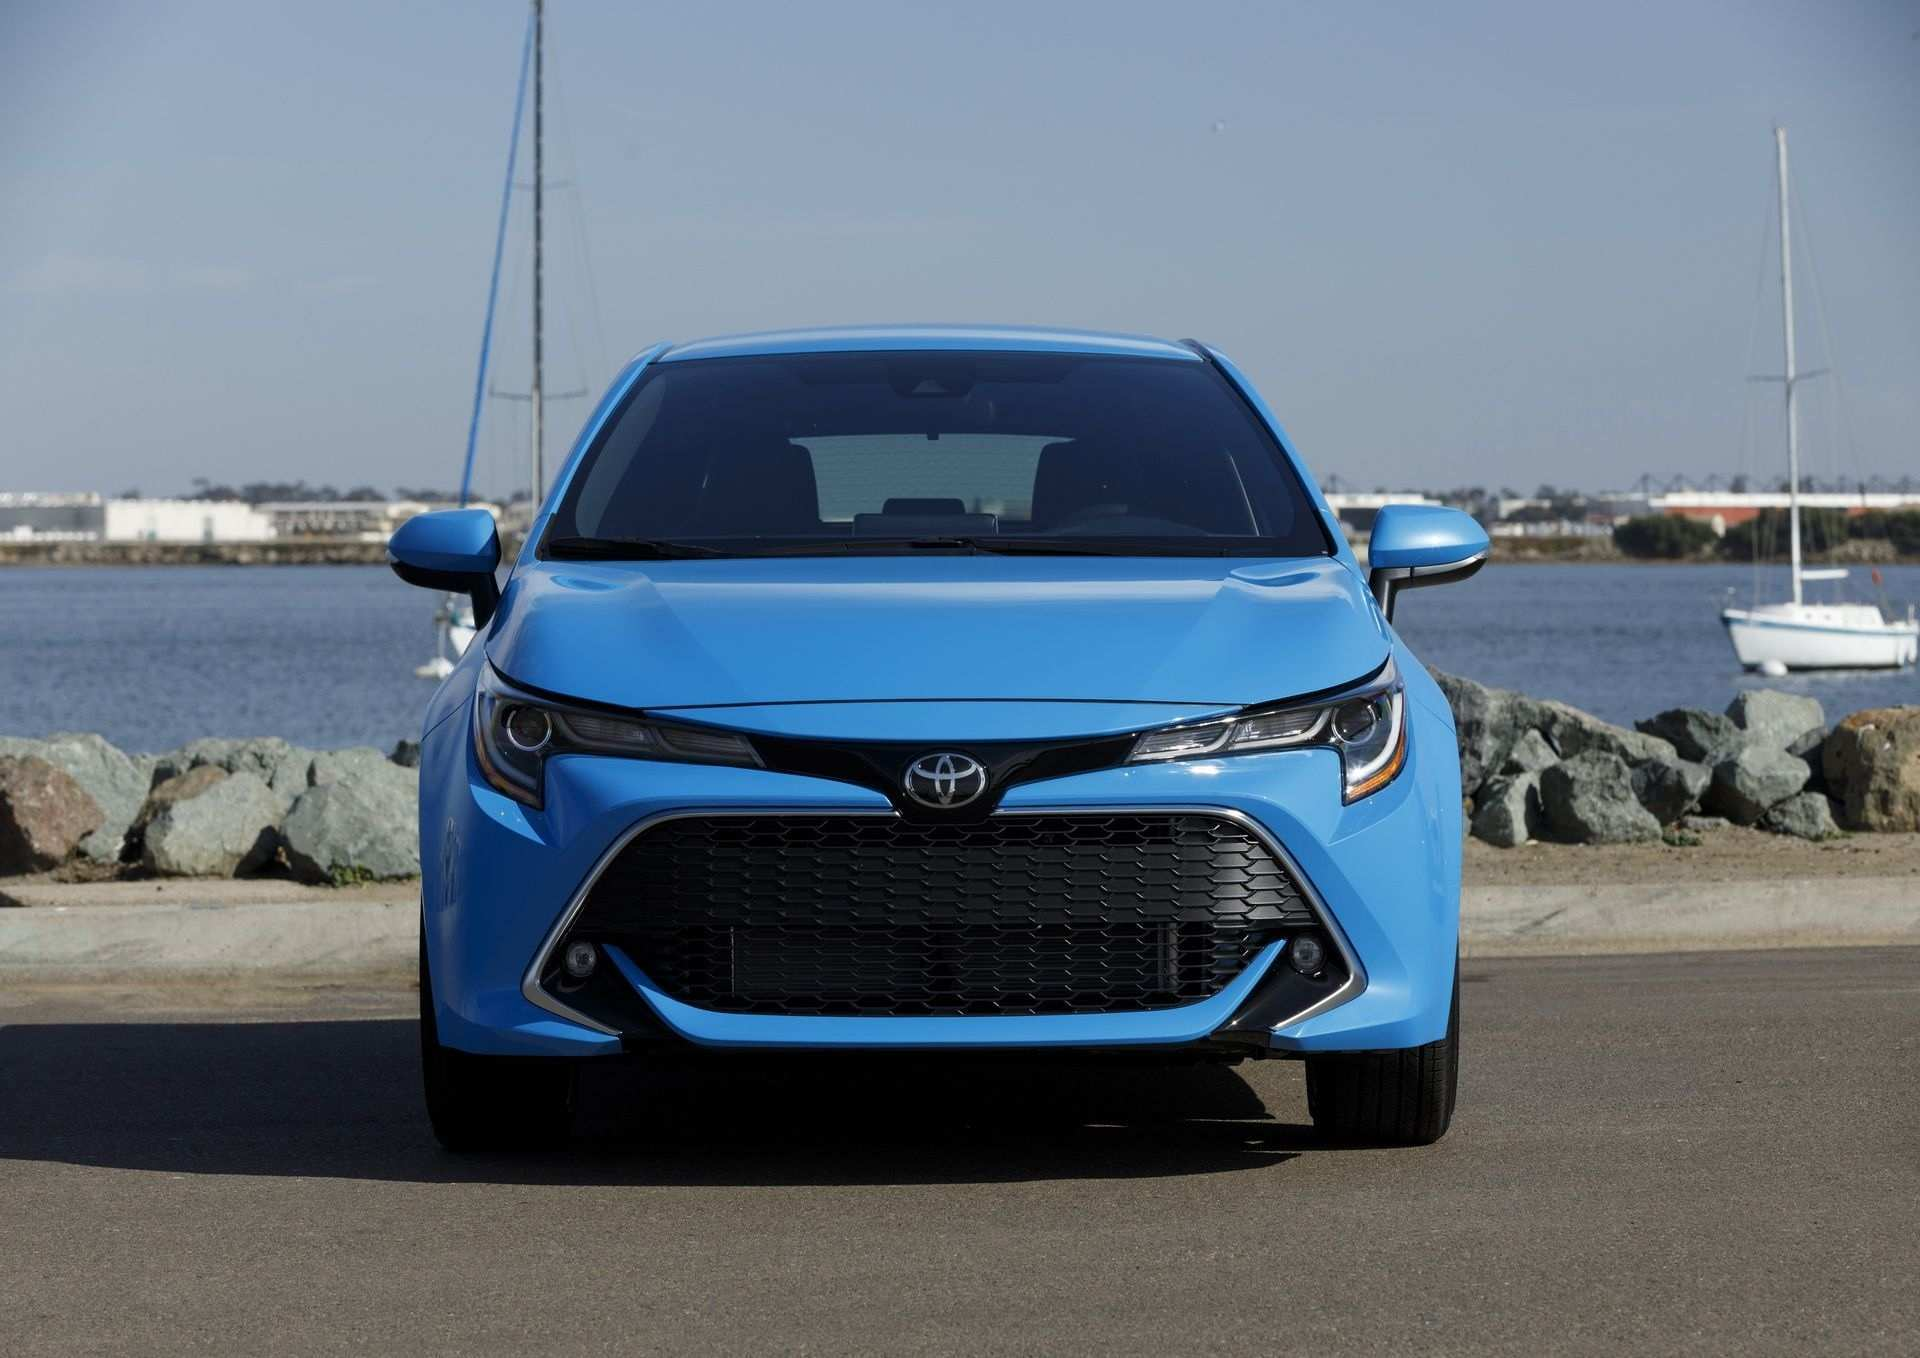 16 Great 2020 Toyota Yaris Hatchback Engine for 2020 Toyota Yaris Hatchback